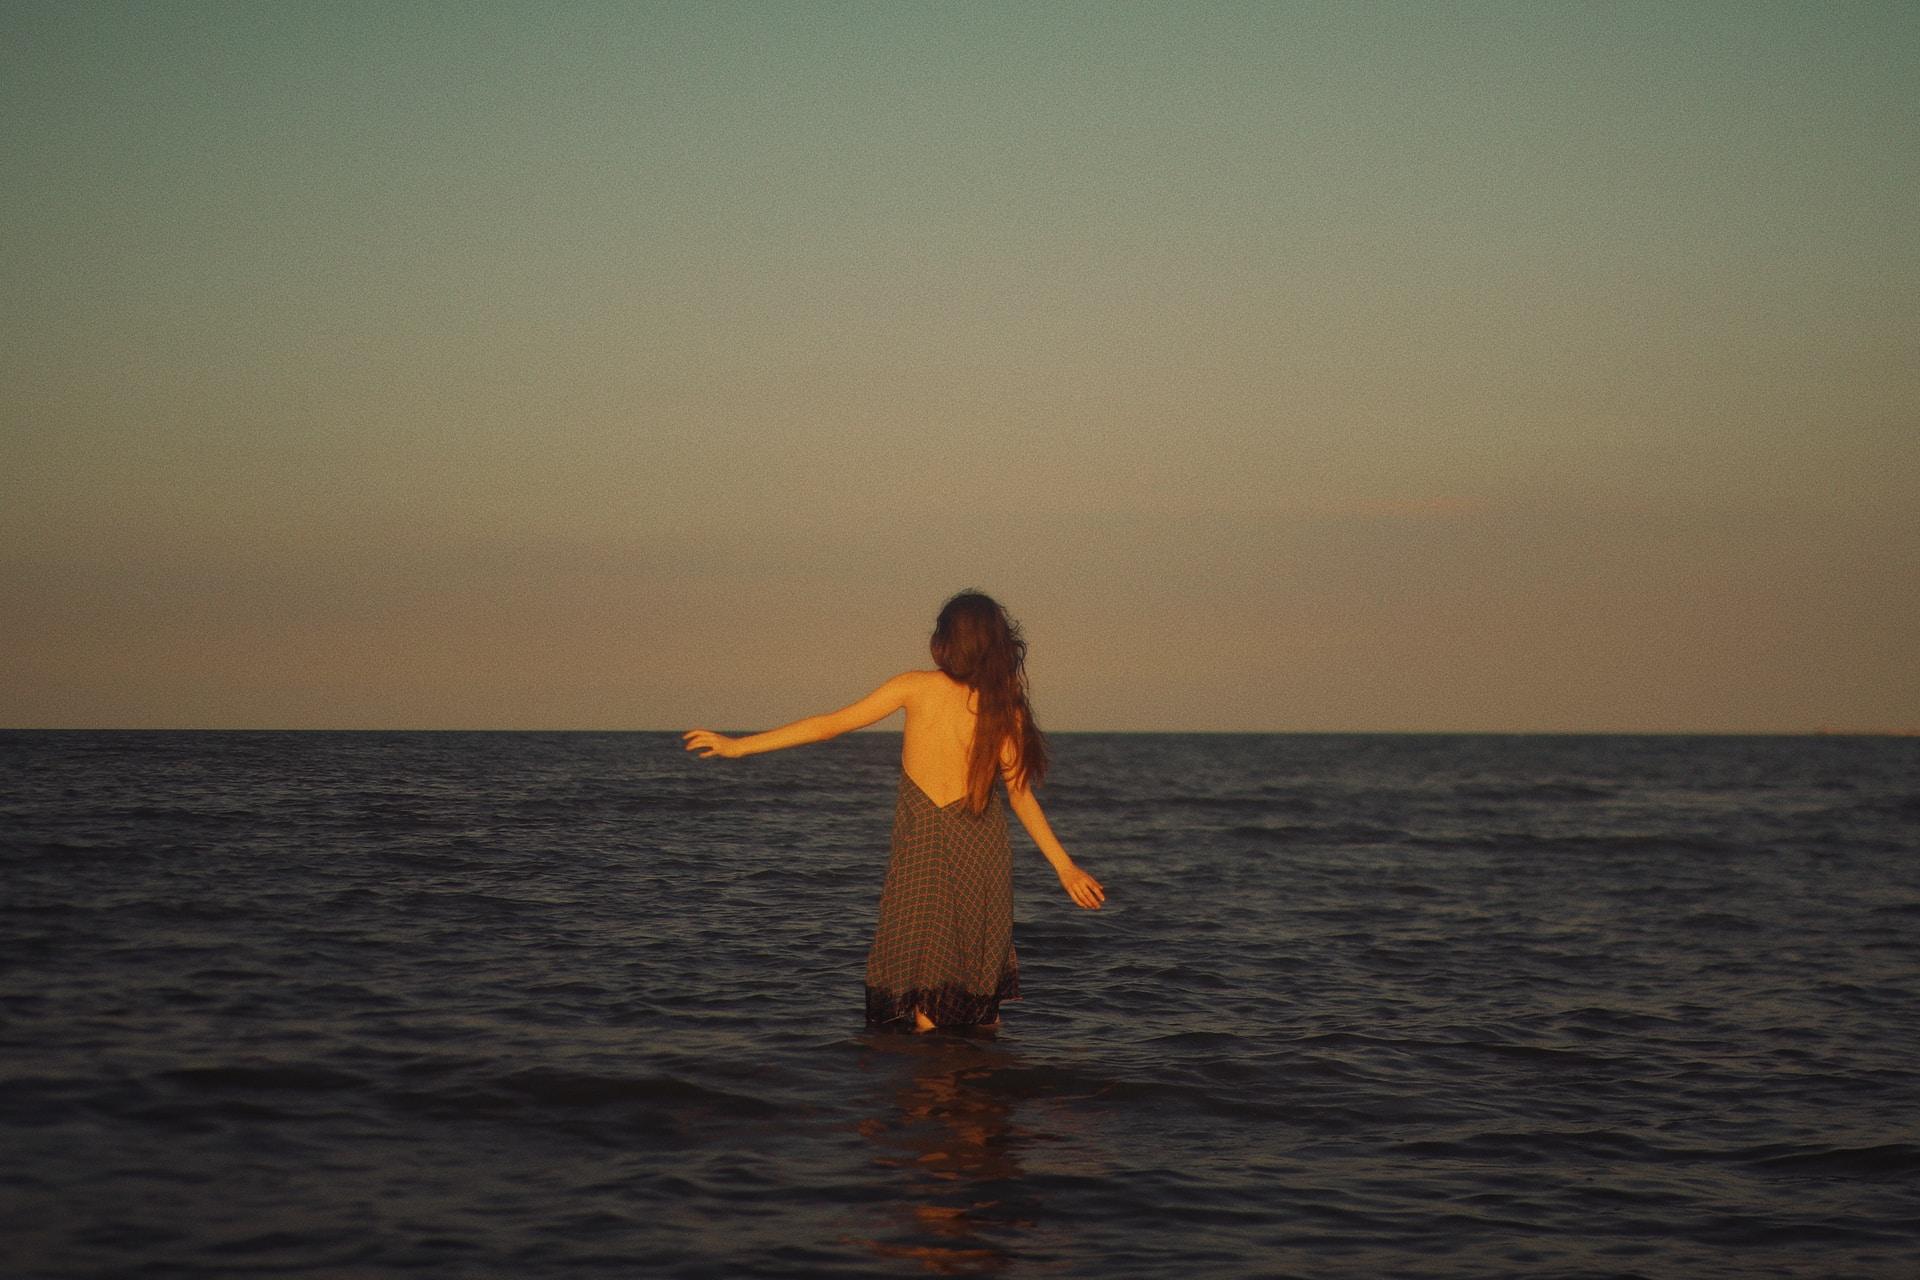 woman in black dress standing on water during sunset